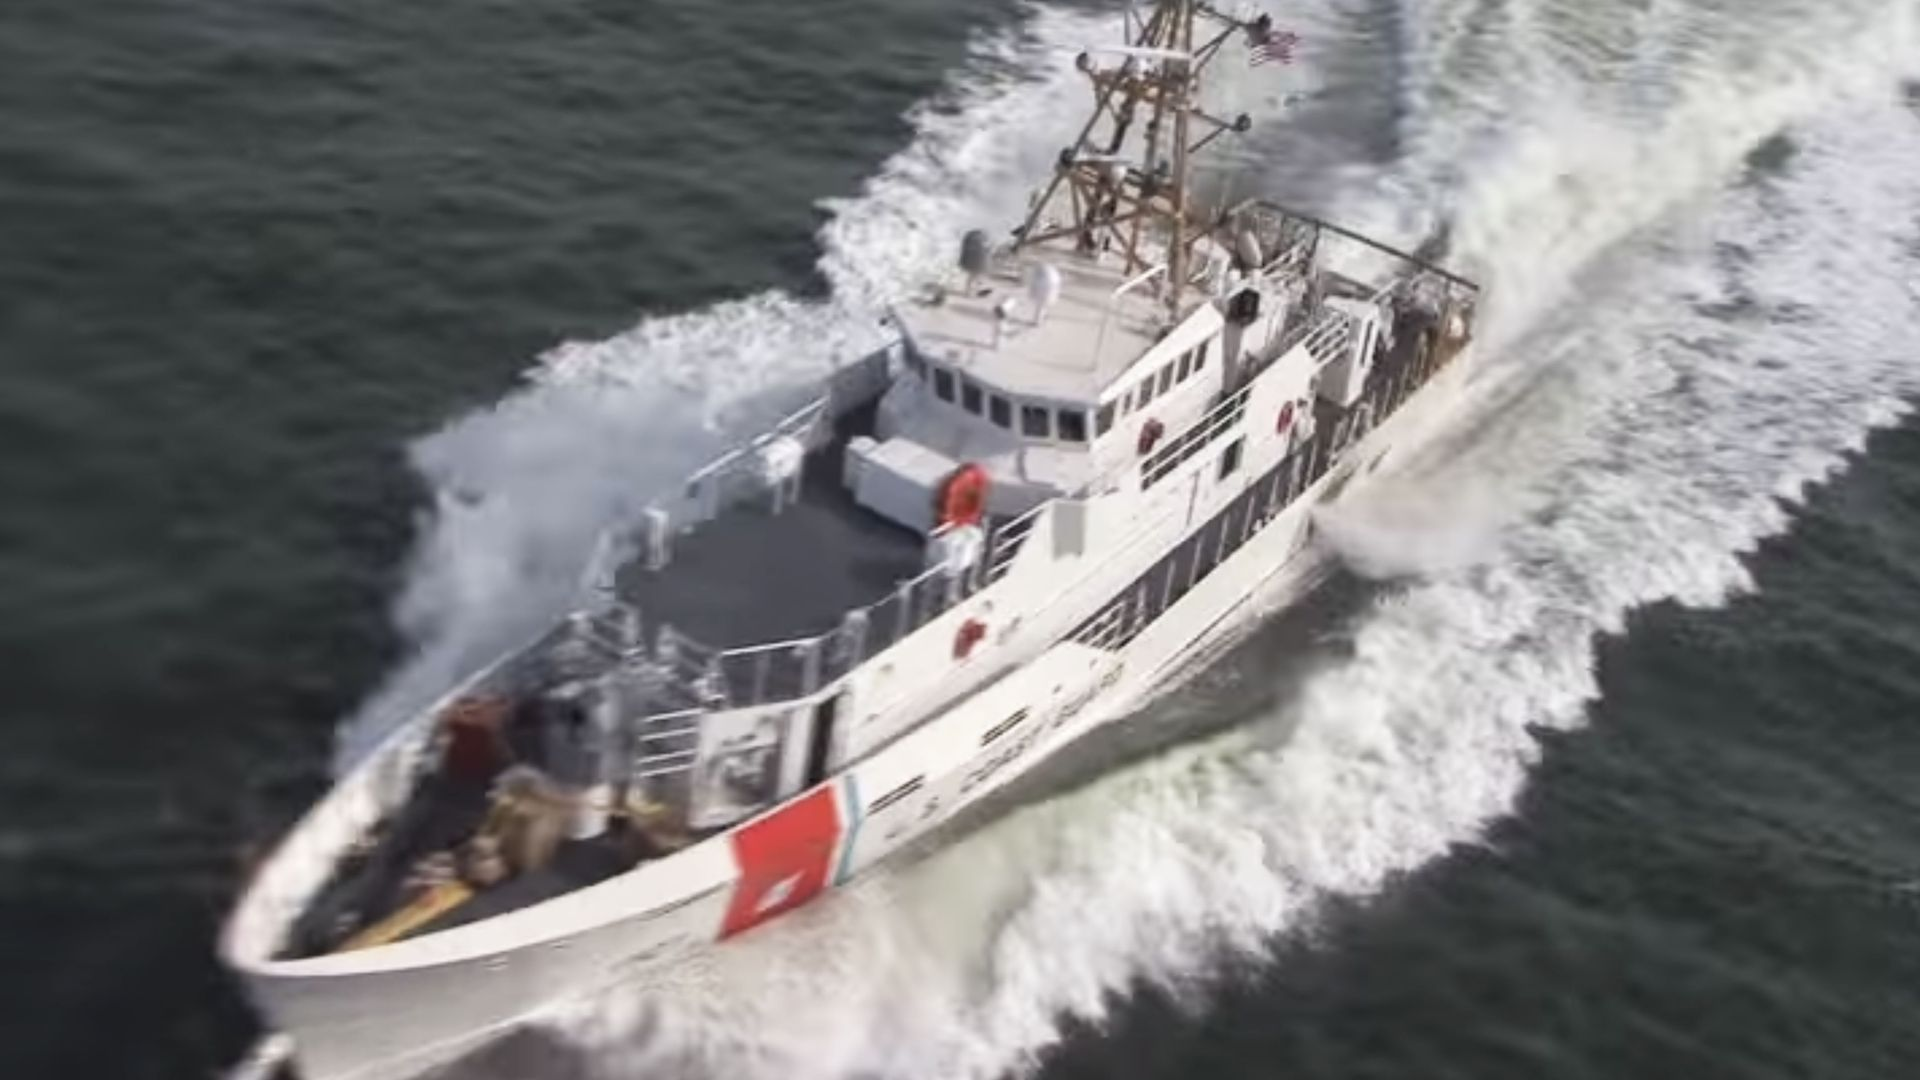 Can You Name All Of These Coast Guard Cutters From A Photo